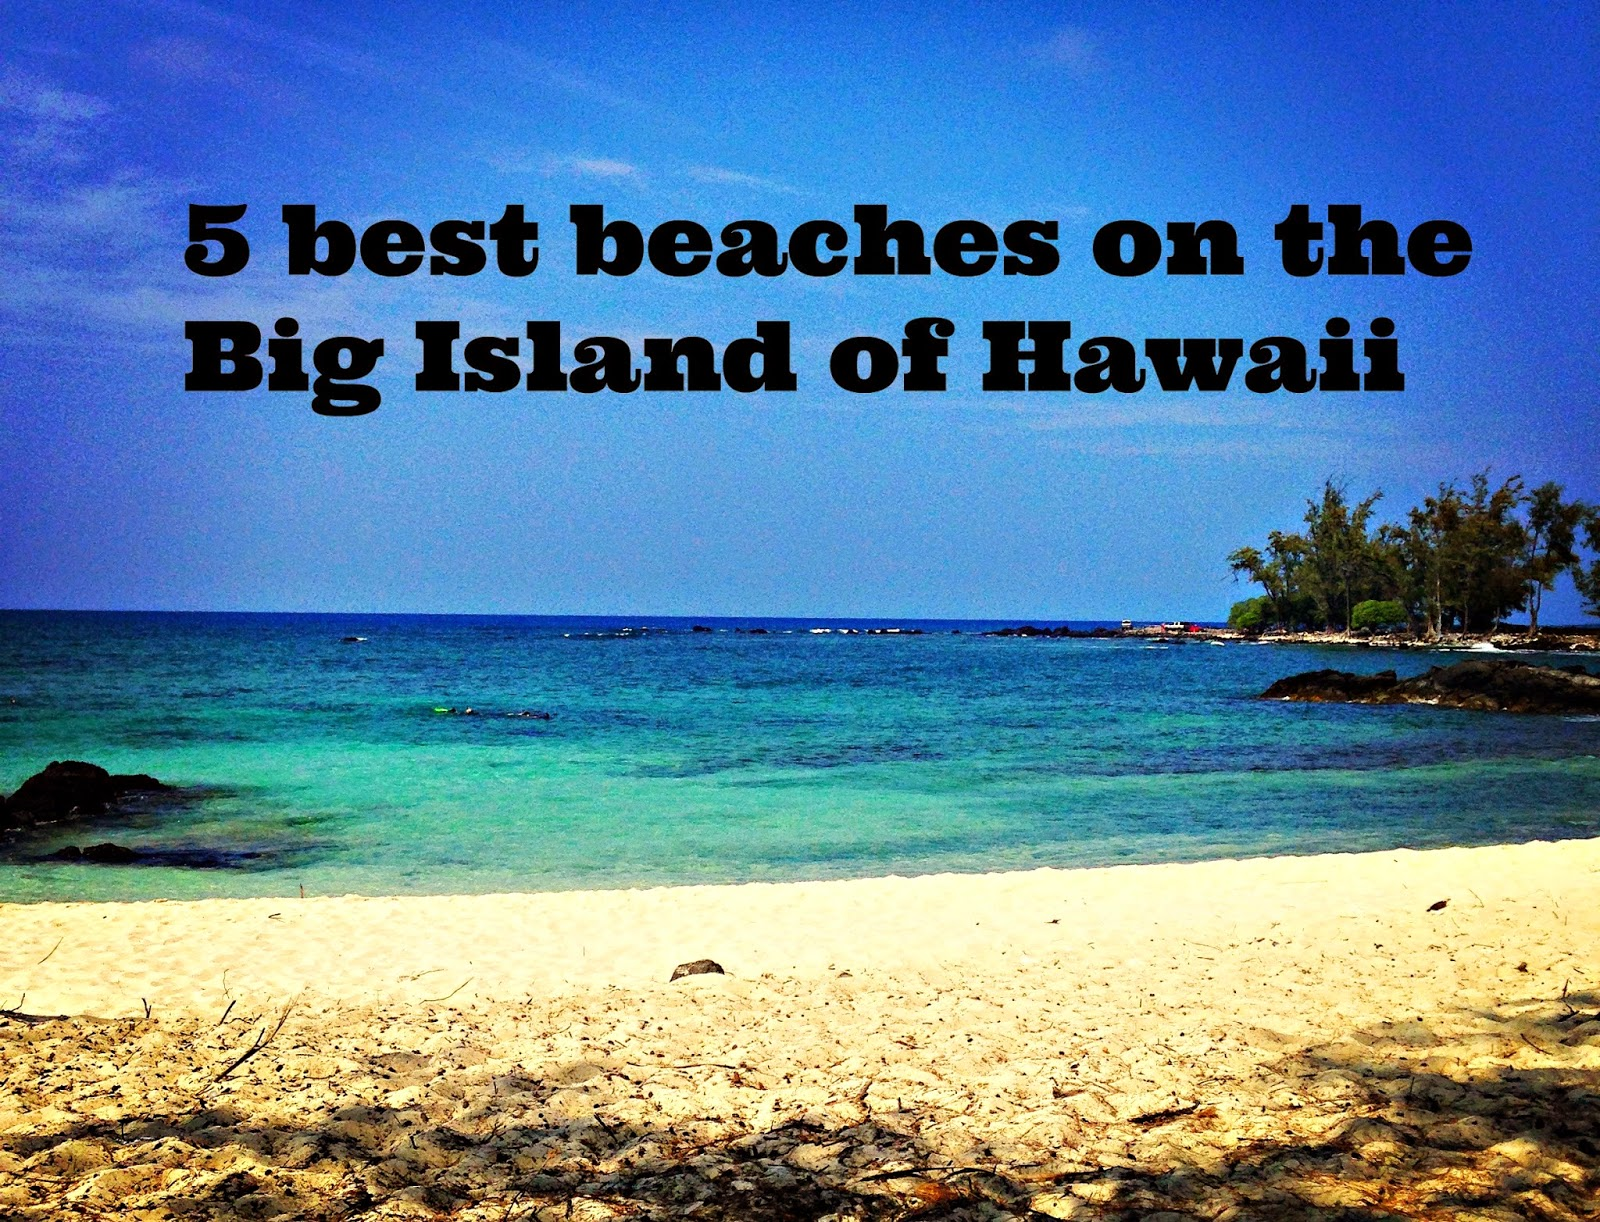 Family Travel Blog   5 best beaches on the Big Island of Hawaii Probably the first thing people think when they imagine Hawaii is an  expansive stretch of one lovely beach after another  It s true that there  are beaches